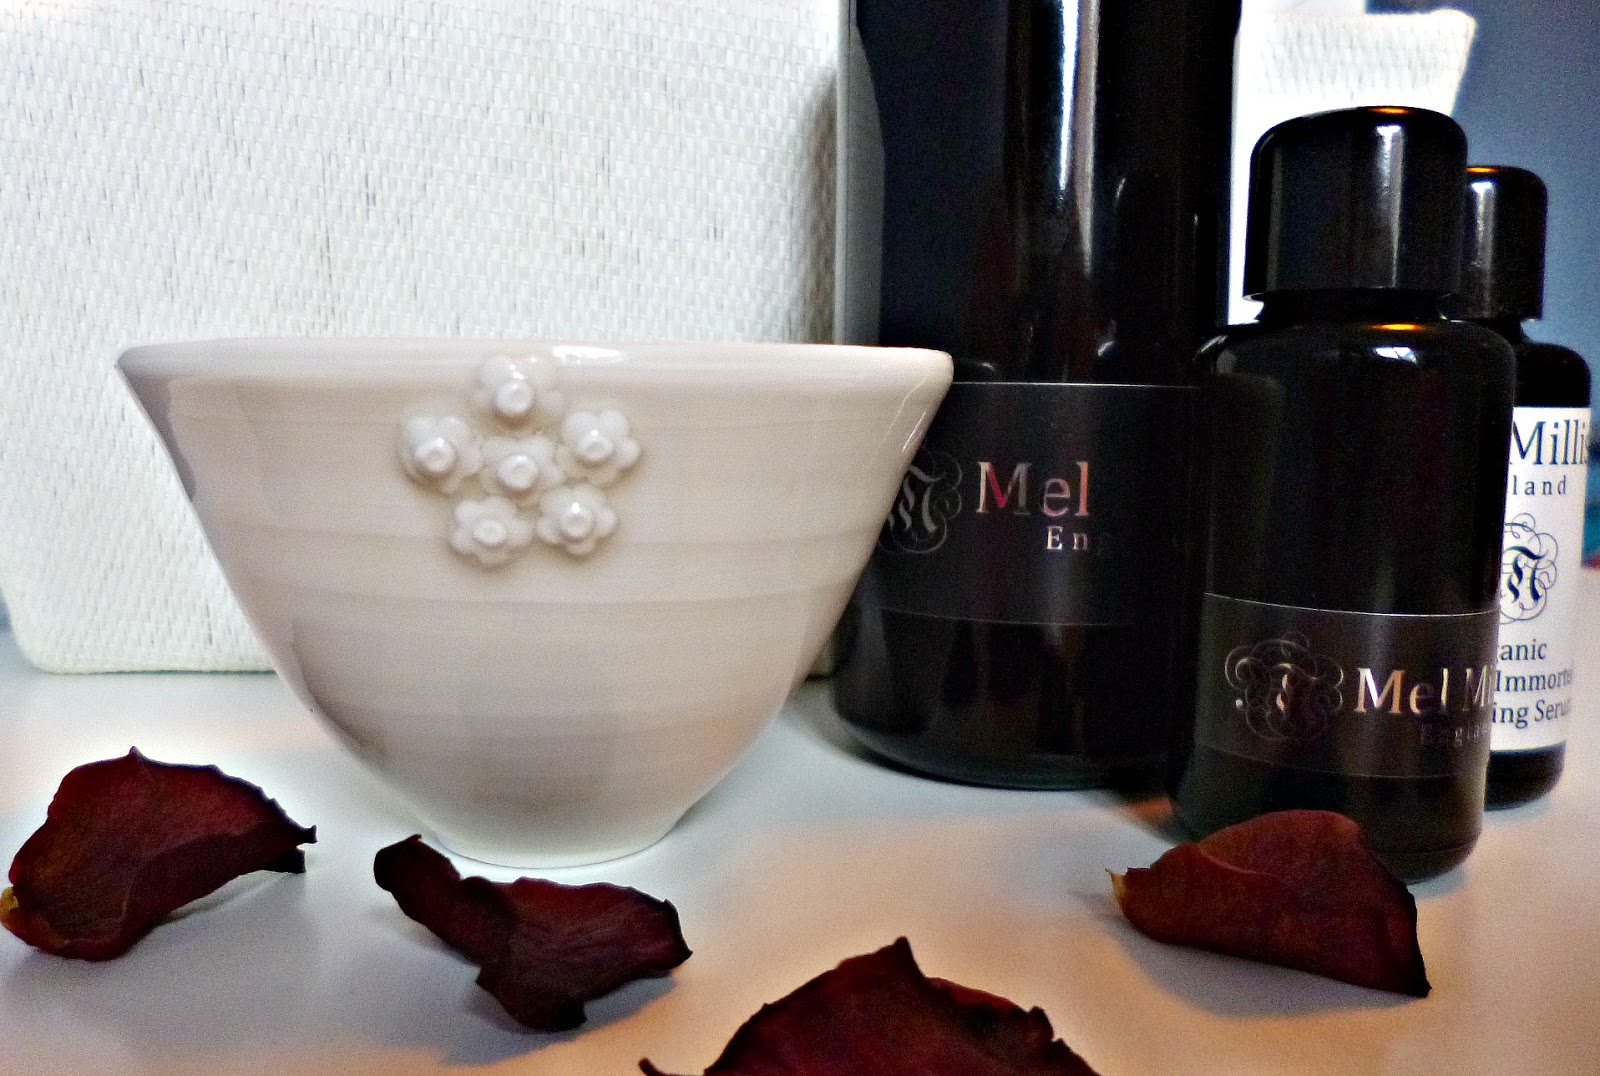 A Touch of luxury: Mel Millis Mixing vessel by Emma Clegg